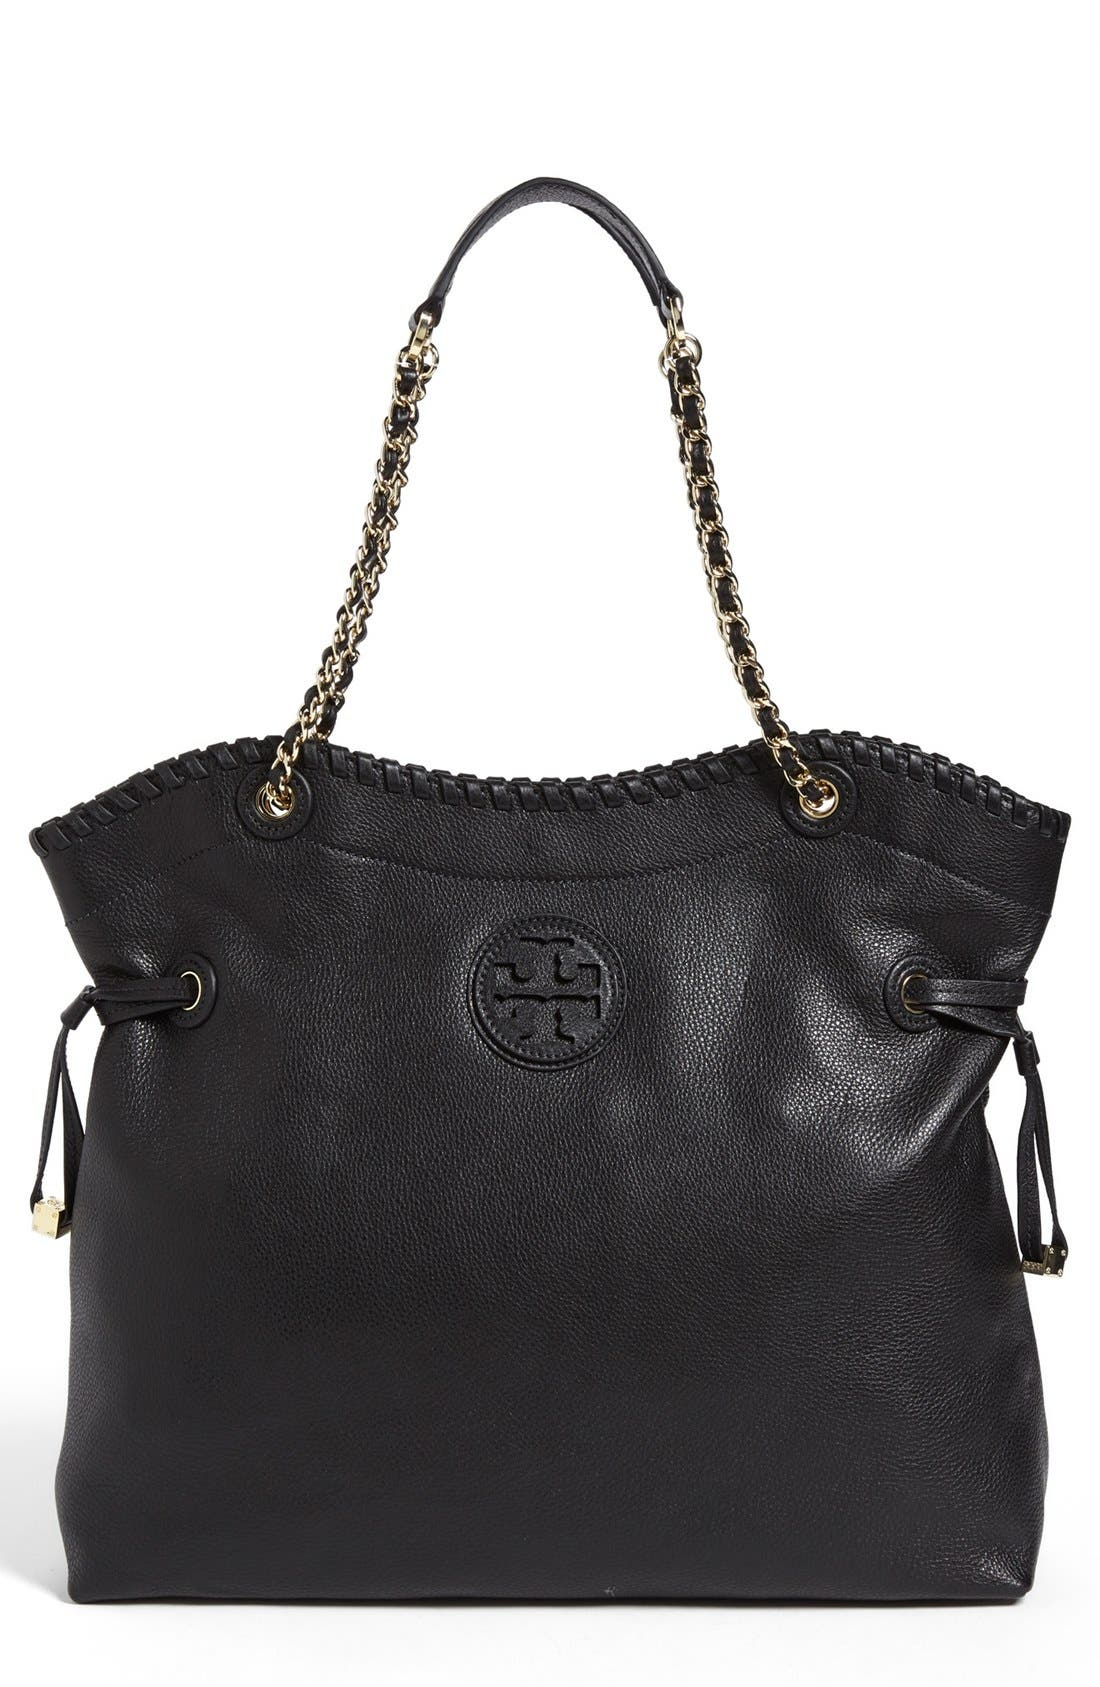 Main Image - Tory Burch 'Marion' Tote